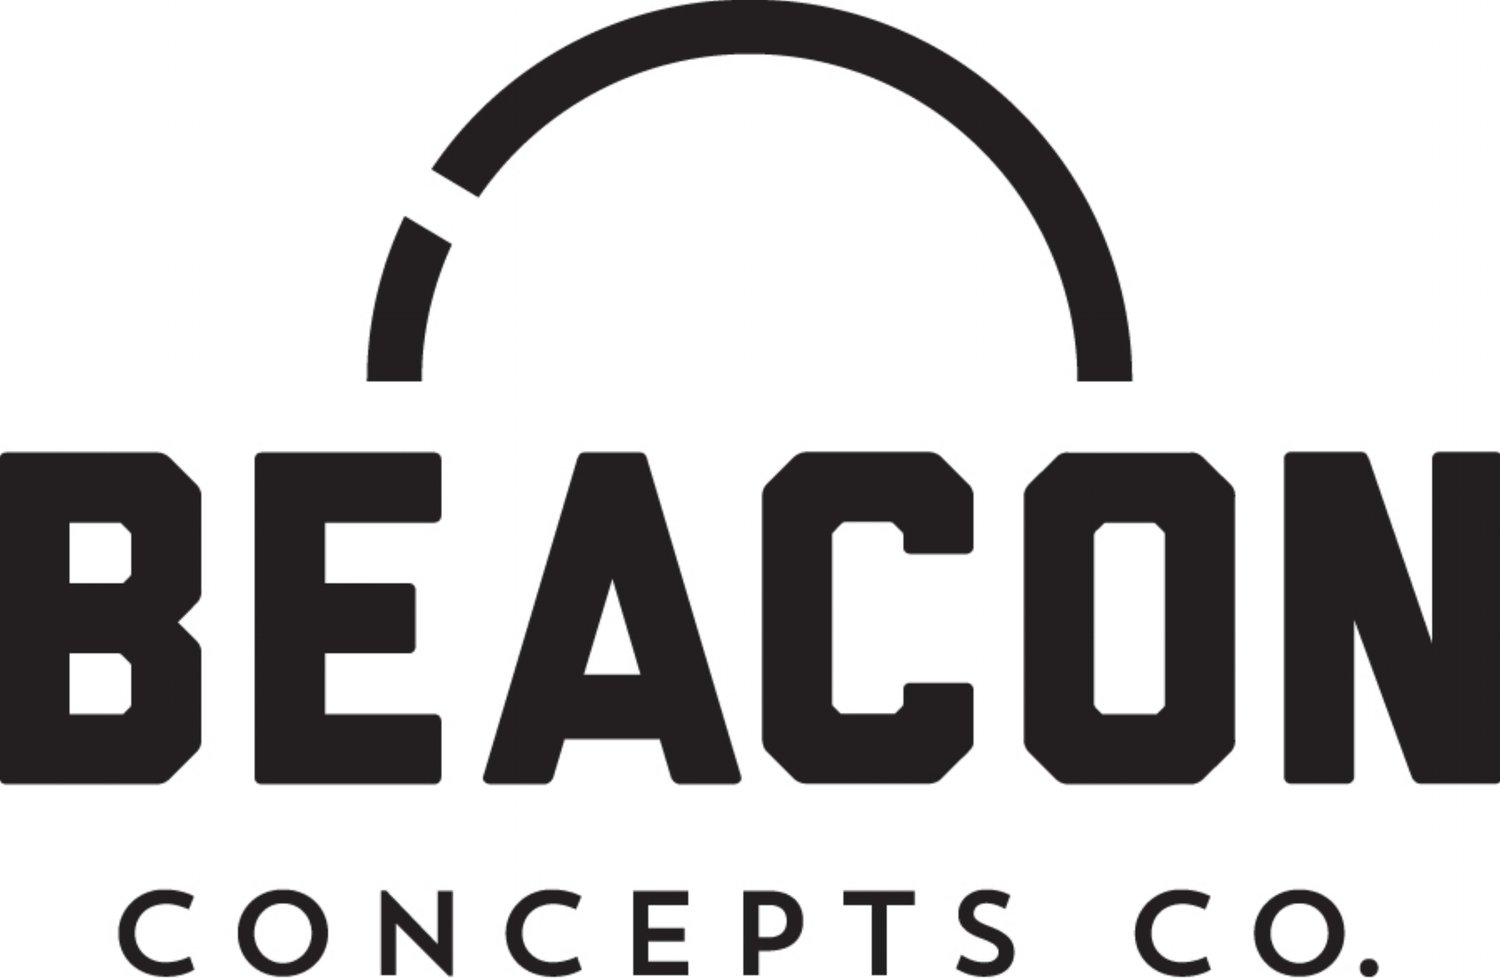 Beacon Concepts Co.